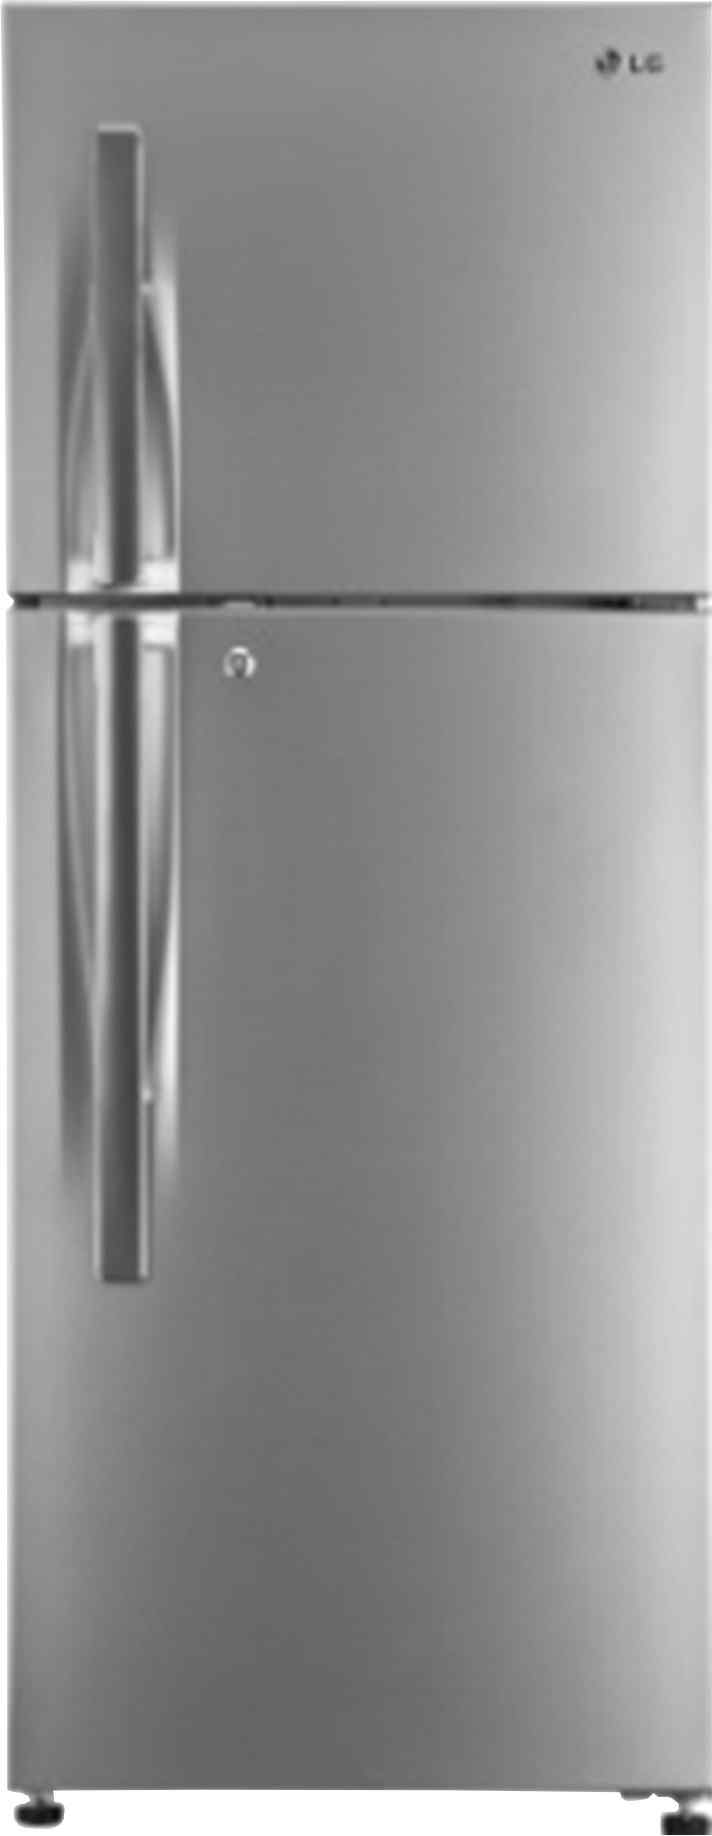 Best price on LG GL-T292RPZM 260 Litre Double Door Refrigerator in India